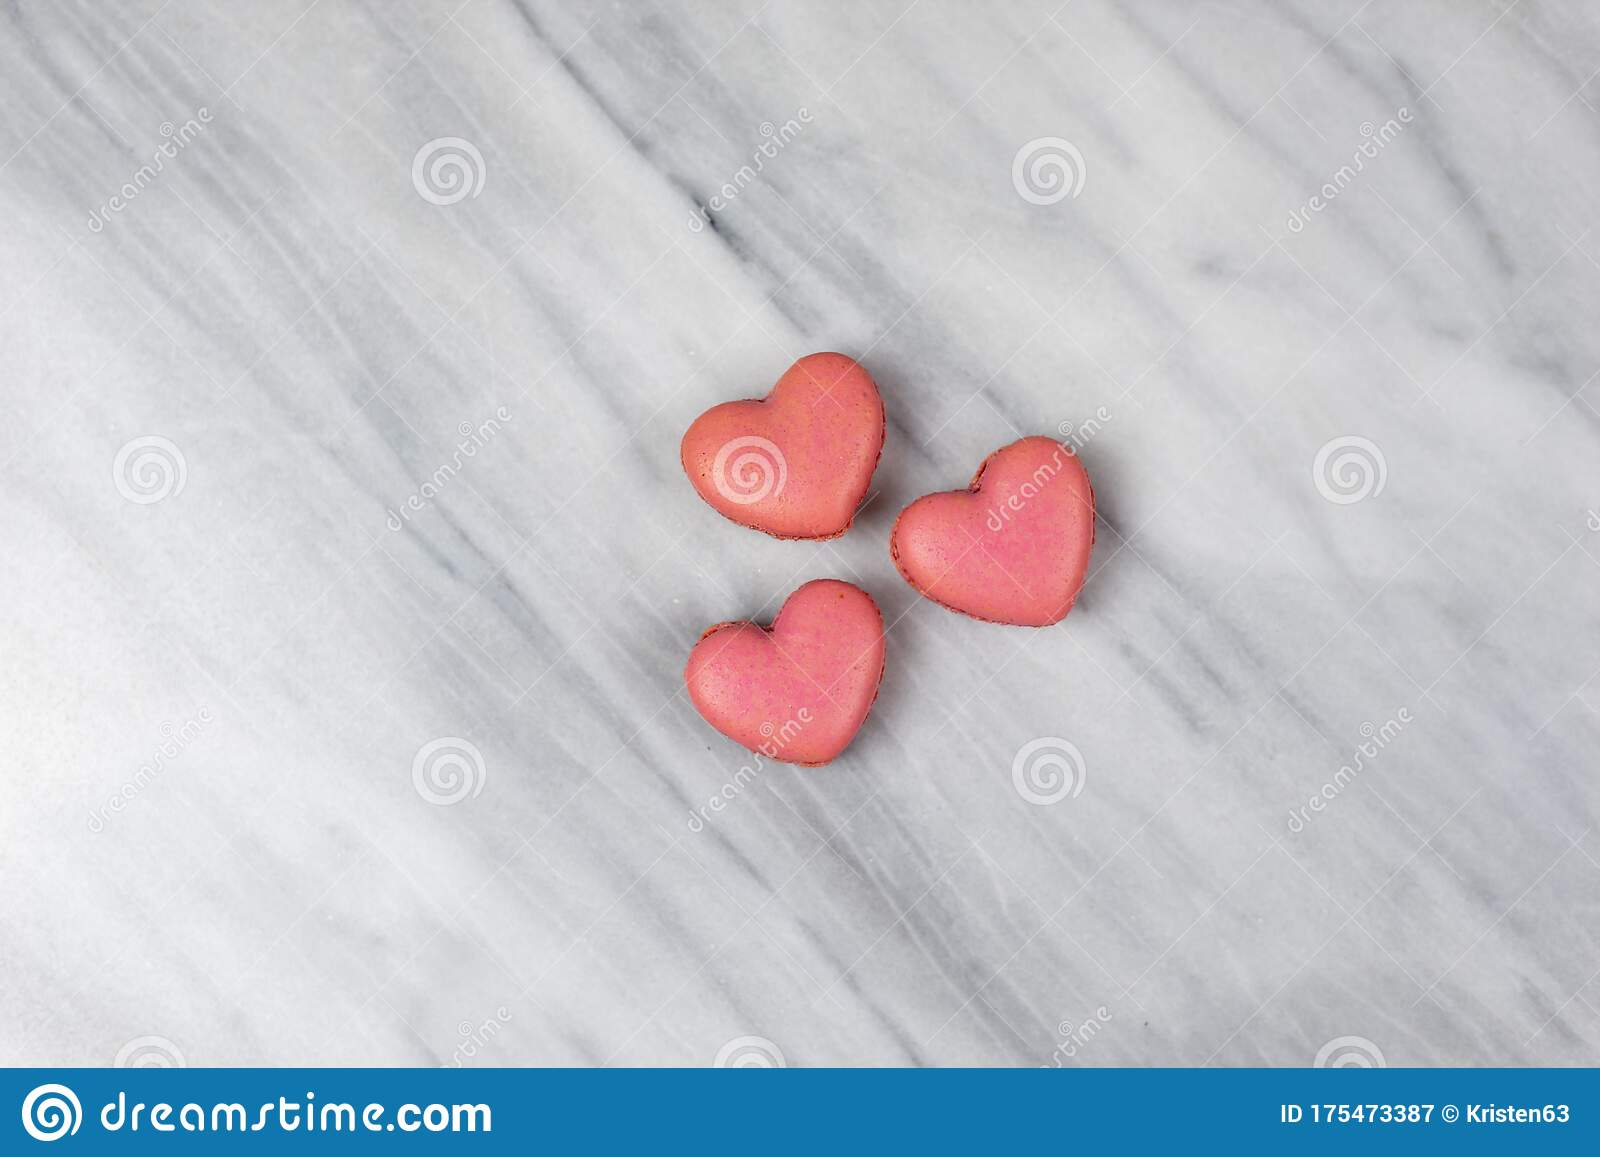 Three Pink Heart Shaped Macaroons On A Marble Background Stock Image Image Of Romance Cake 175473387